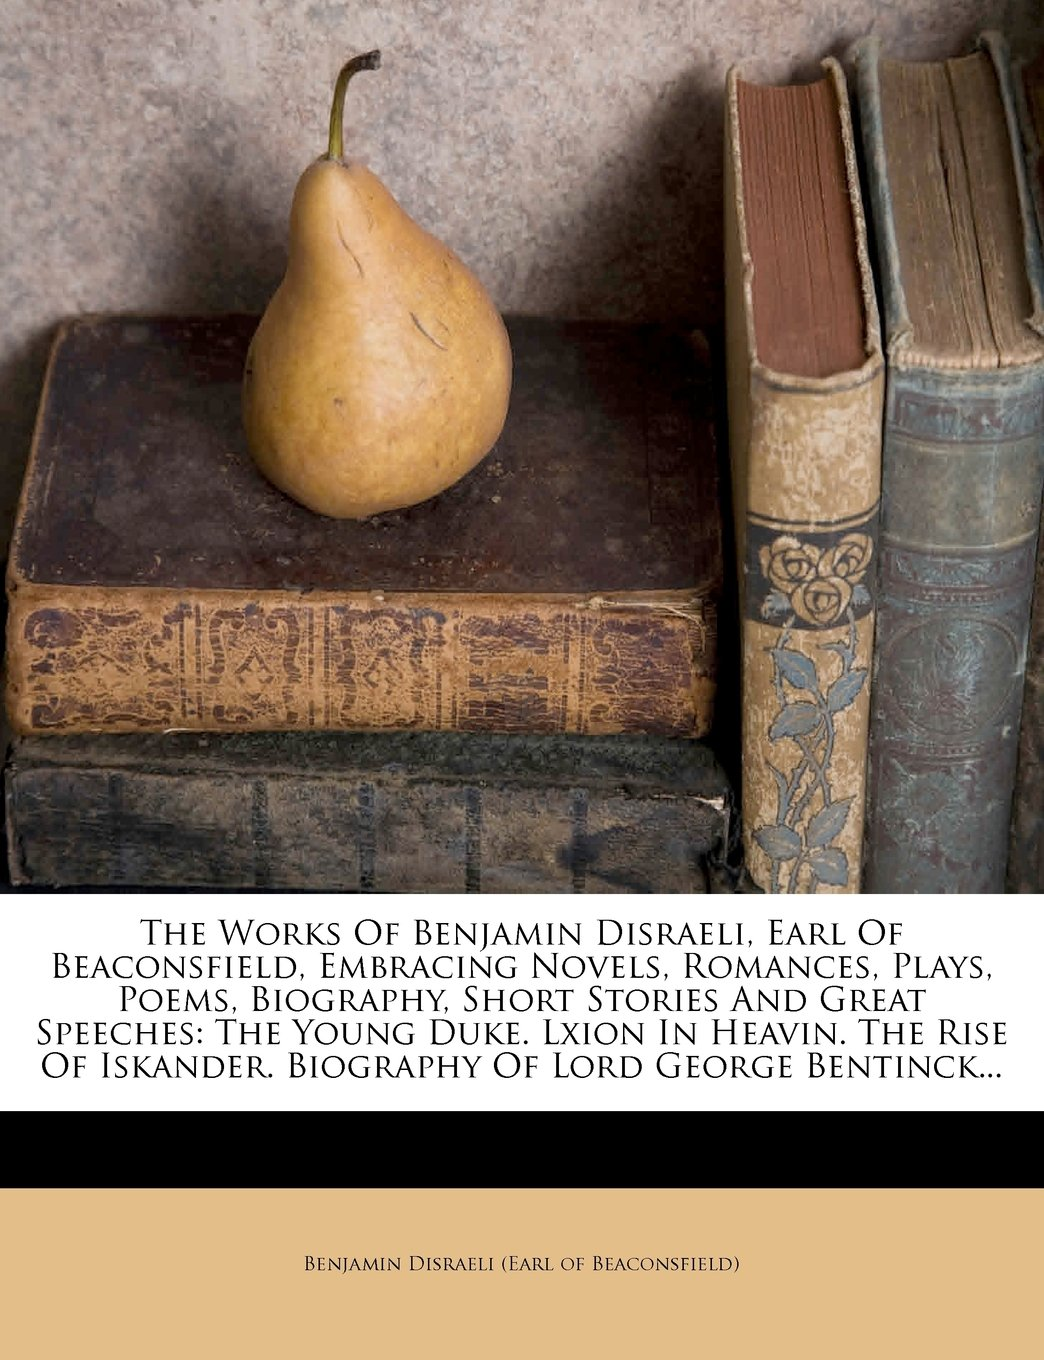 The Works Of Benjamin Disraeli, Earl Of Beaconsfield, Embracing Novels, Romances, Plays, Poems, Biography, Short Stories And Great Speeches: The Young ... Biography Of Lord George Bentinck... pdf